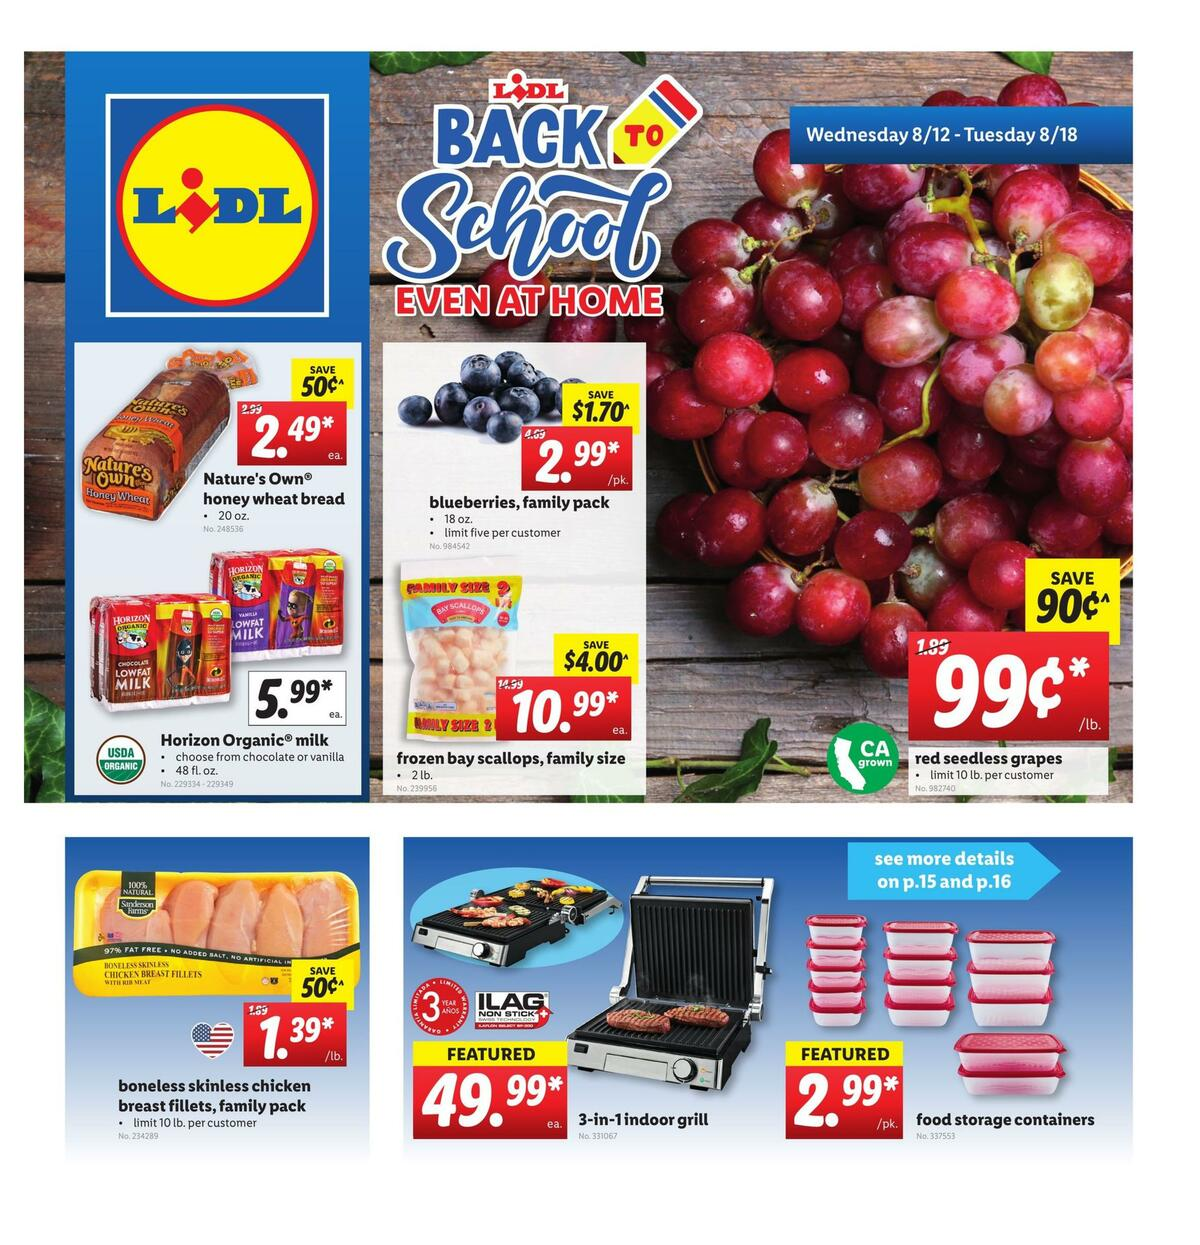 LIDL Weekly Ad from August 12